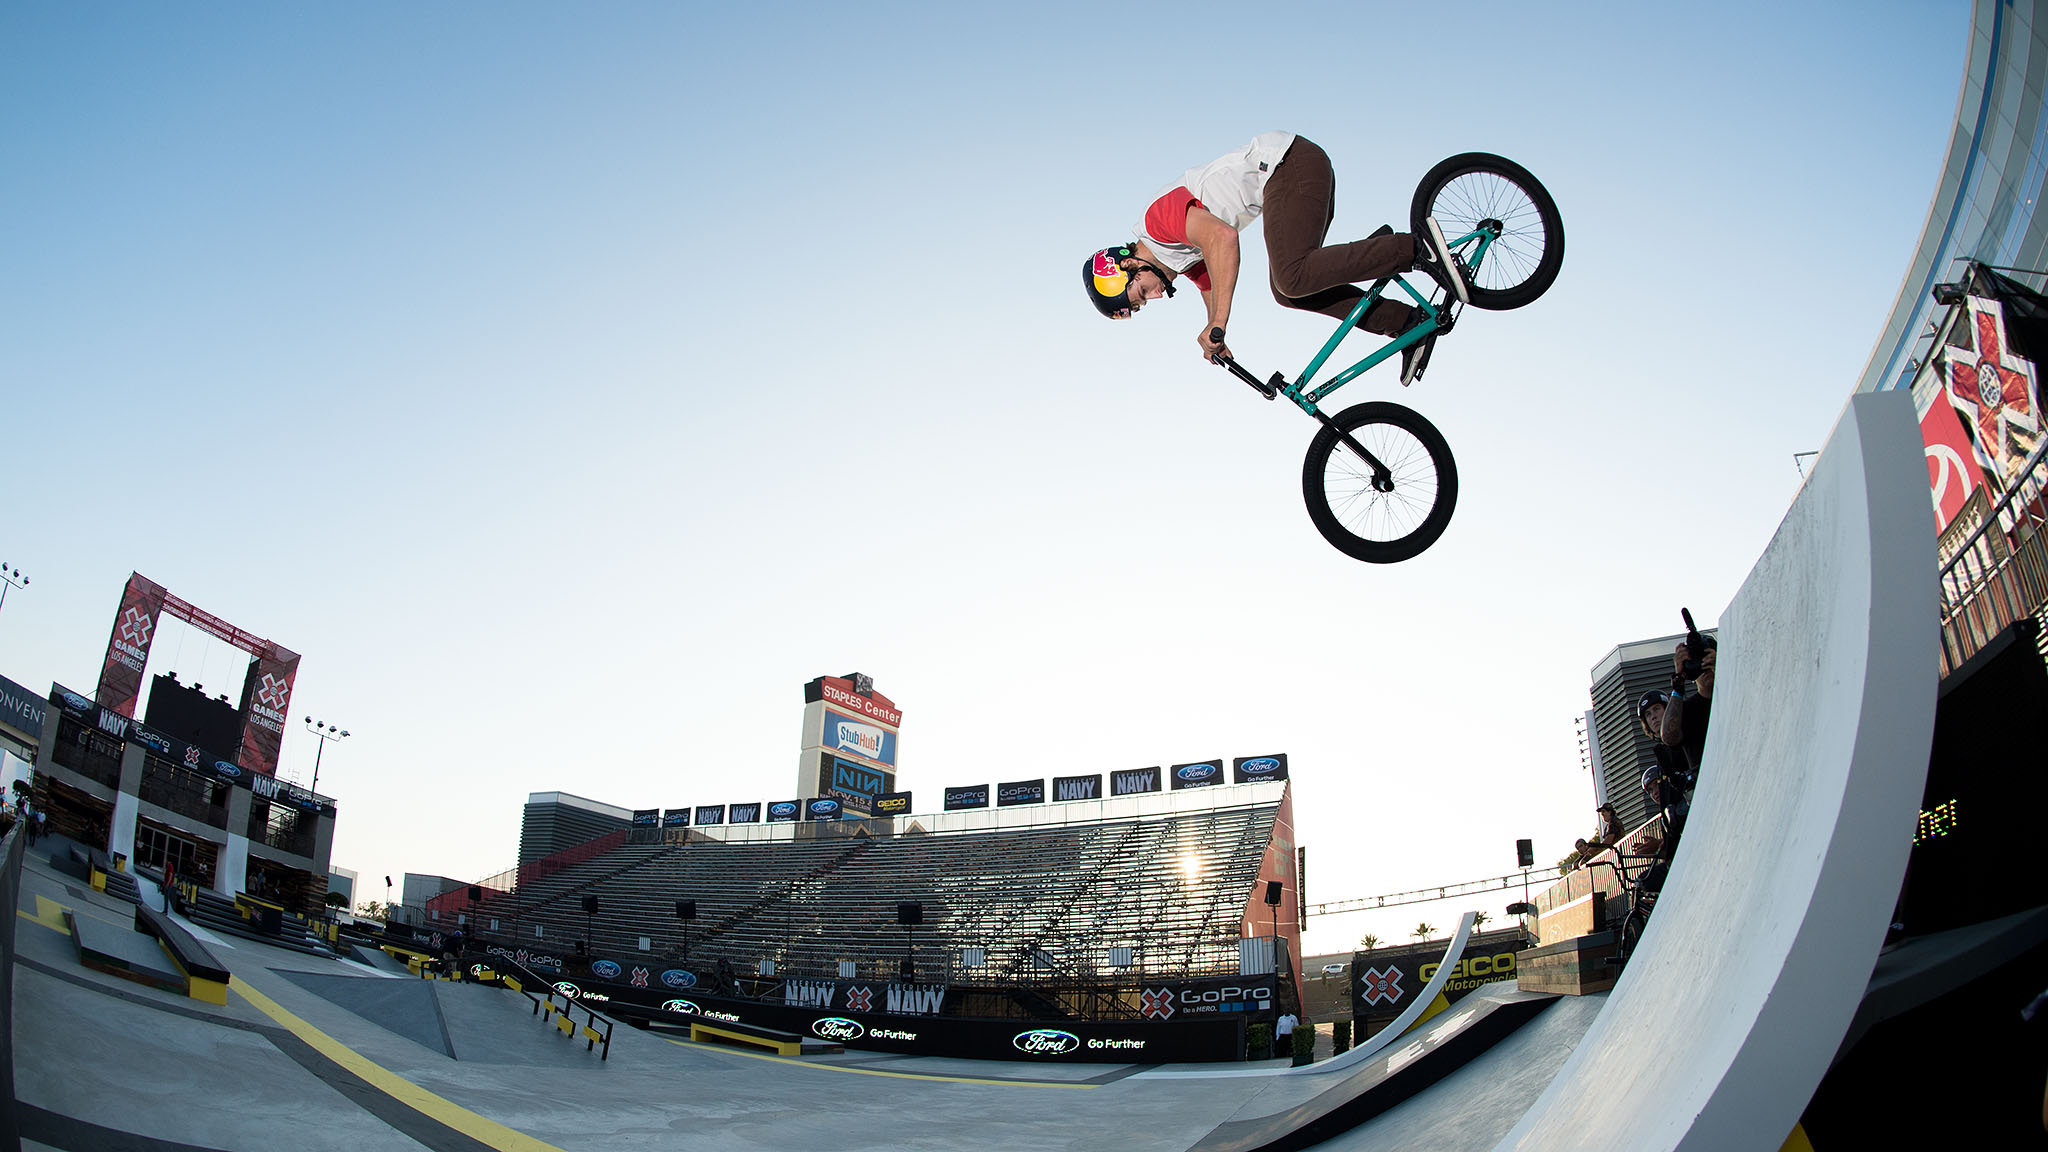 Since the introduction of BMX Street to X Games in 2006, no other BMXer aside from Garrett Reynolds has claimed gold in the discipline. Reynolds will attempt to defend his perfect record on Day 3 of X Games Los Angeles with moves like this 360 to fakie.